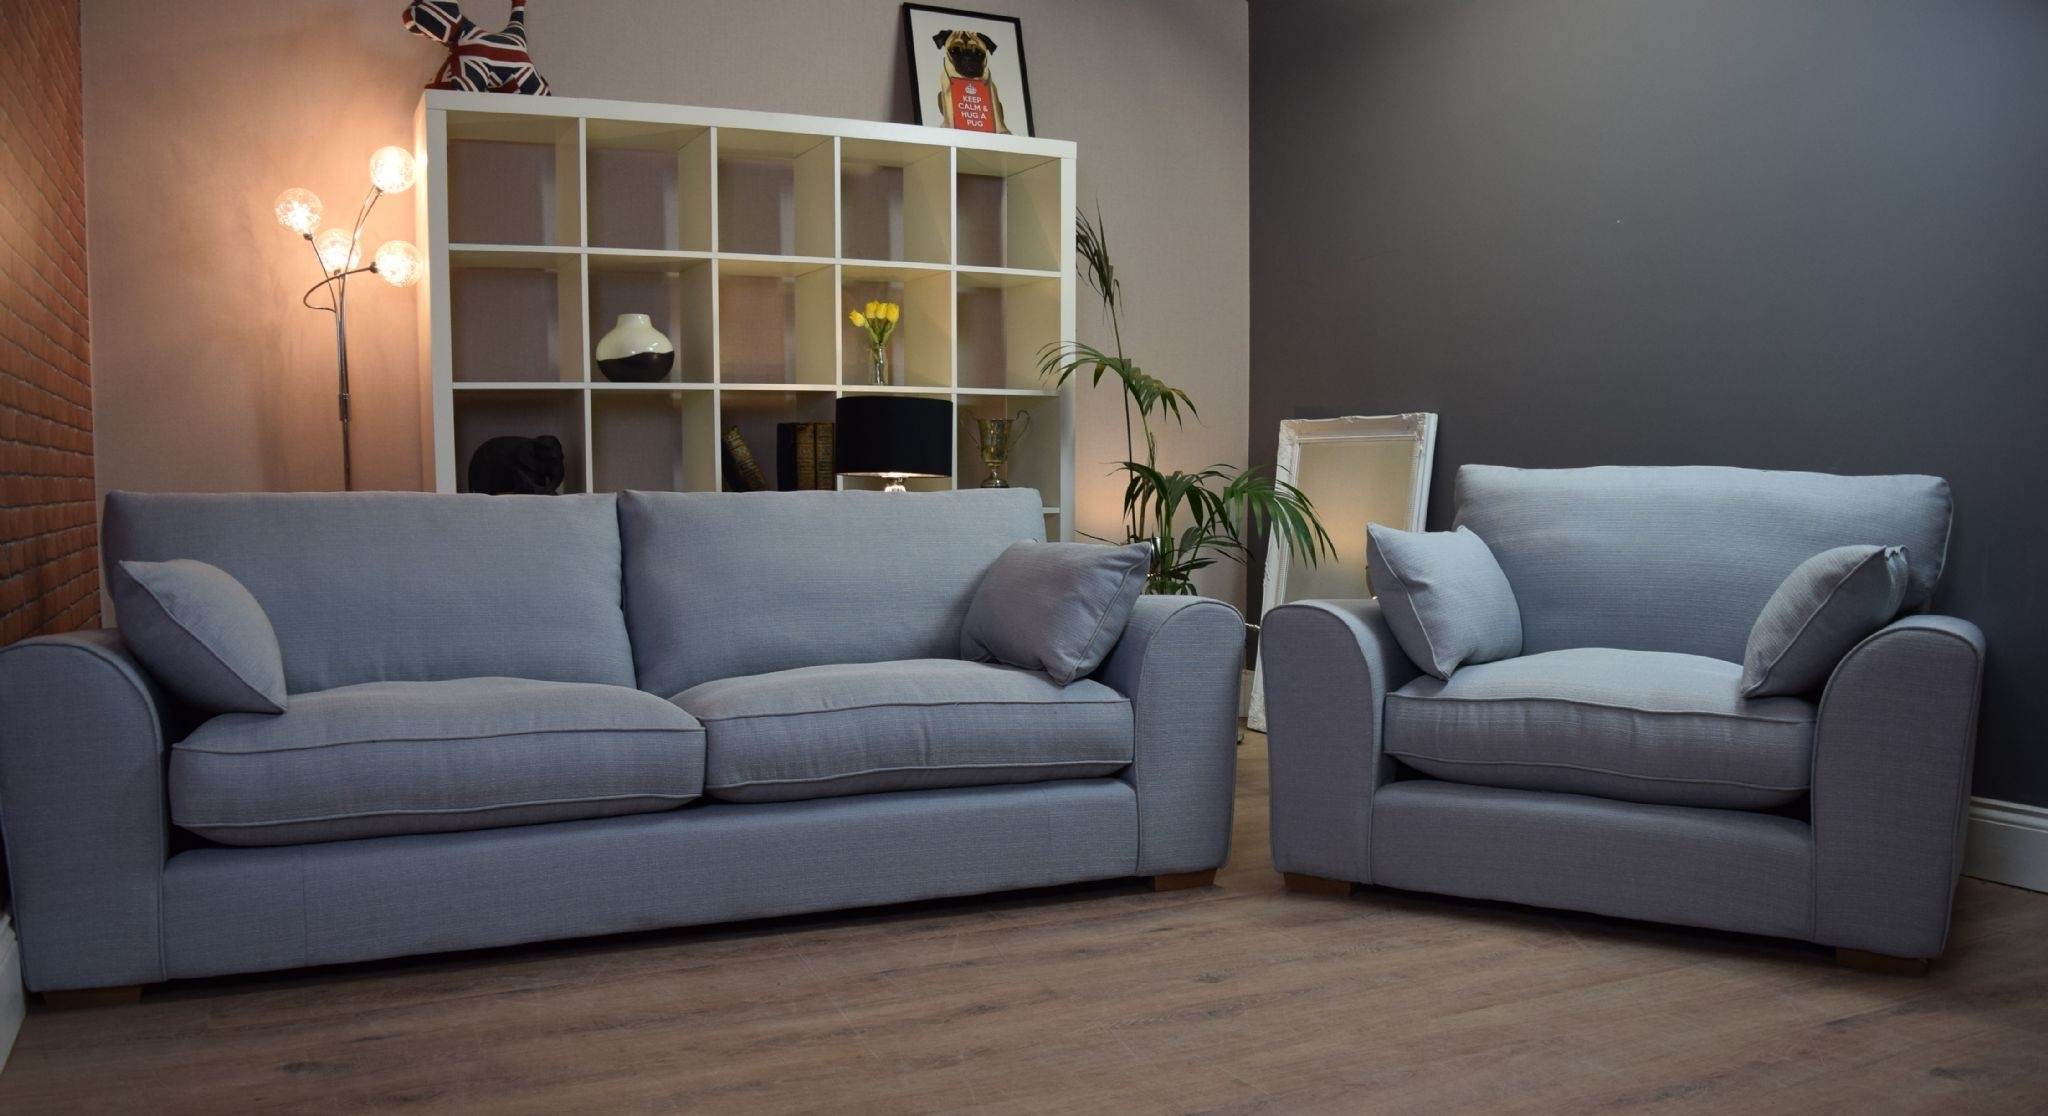 Set New Ashdown 3 Seater Sofa & Cuddle Chair Set – Duck Egg Blue With Regard To 3 Seater Sofas And Cuddle Chairs (View 6 of 10)